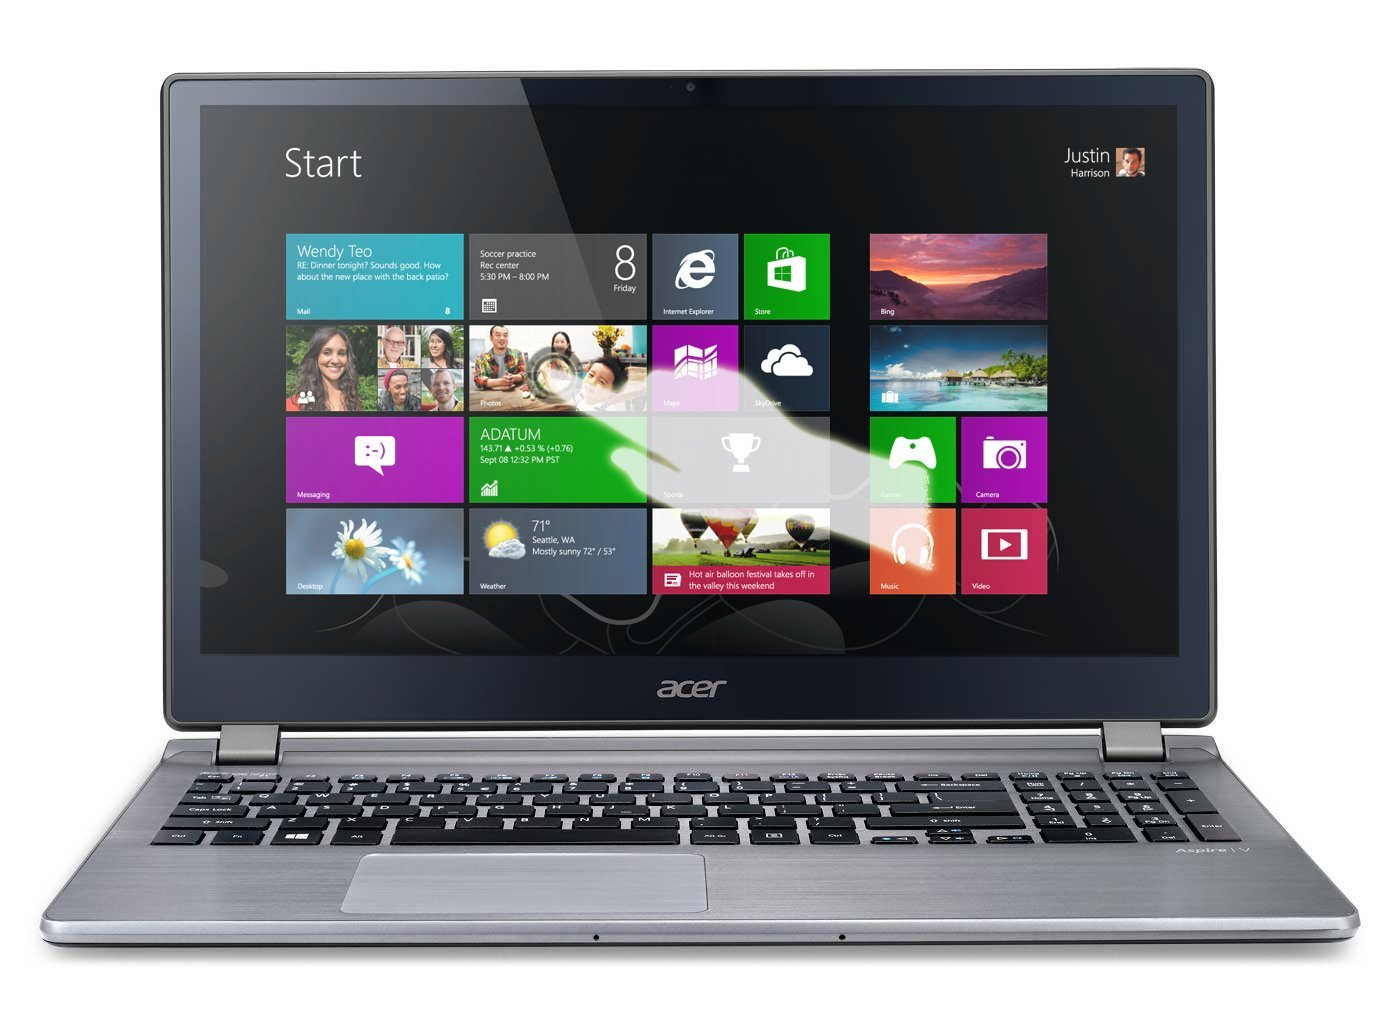 ACER ASPIRE V7-581PG INTEL GRAPHICS WINDOWS 8 X64 DRIVER DOWNLOAD